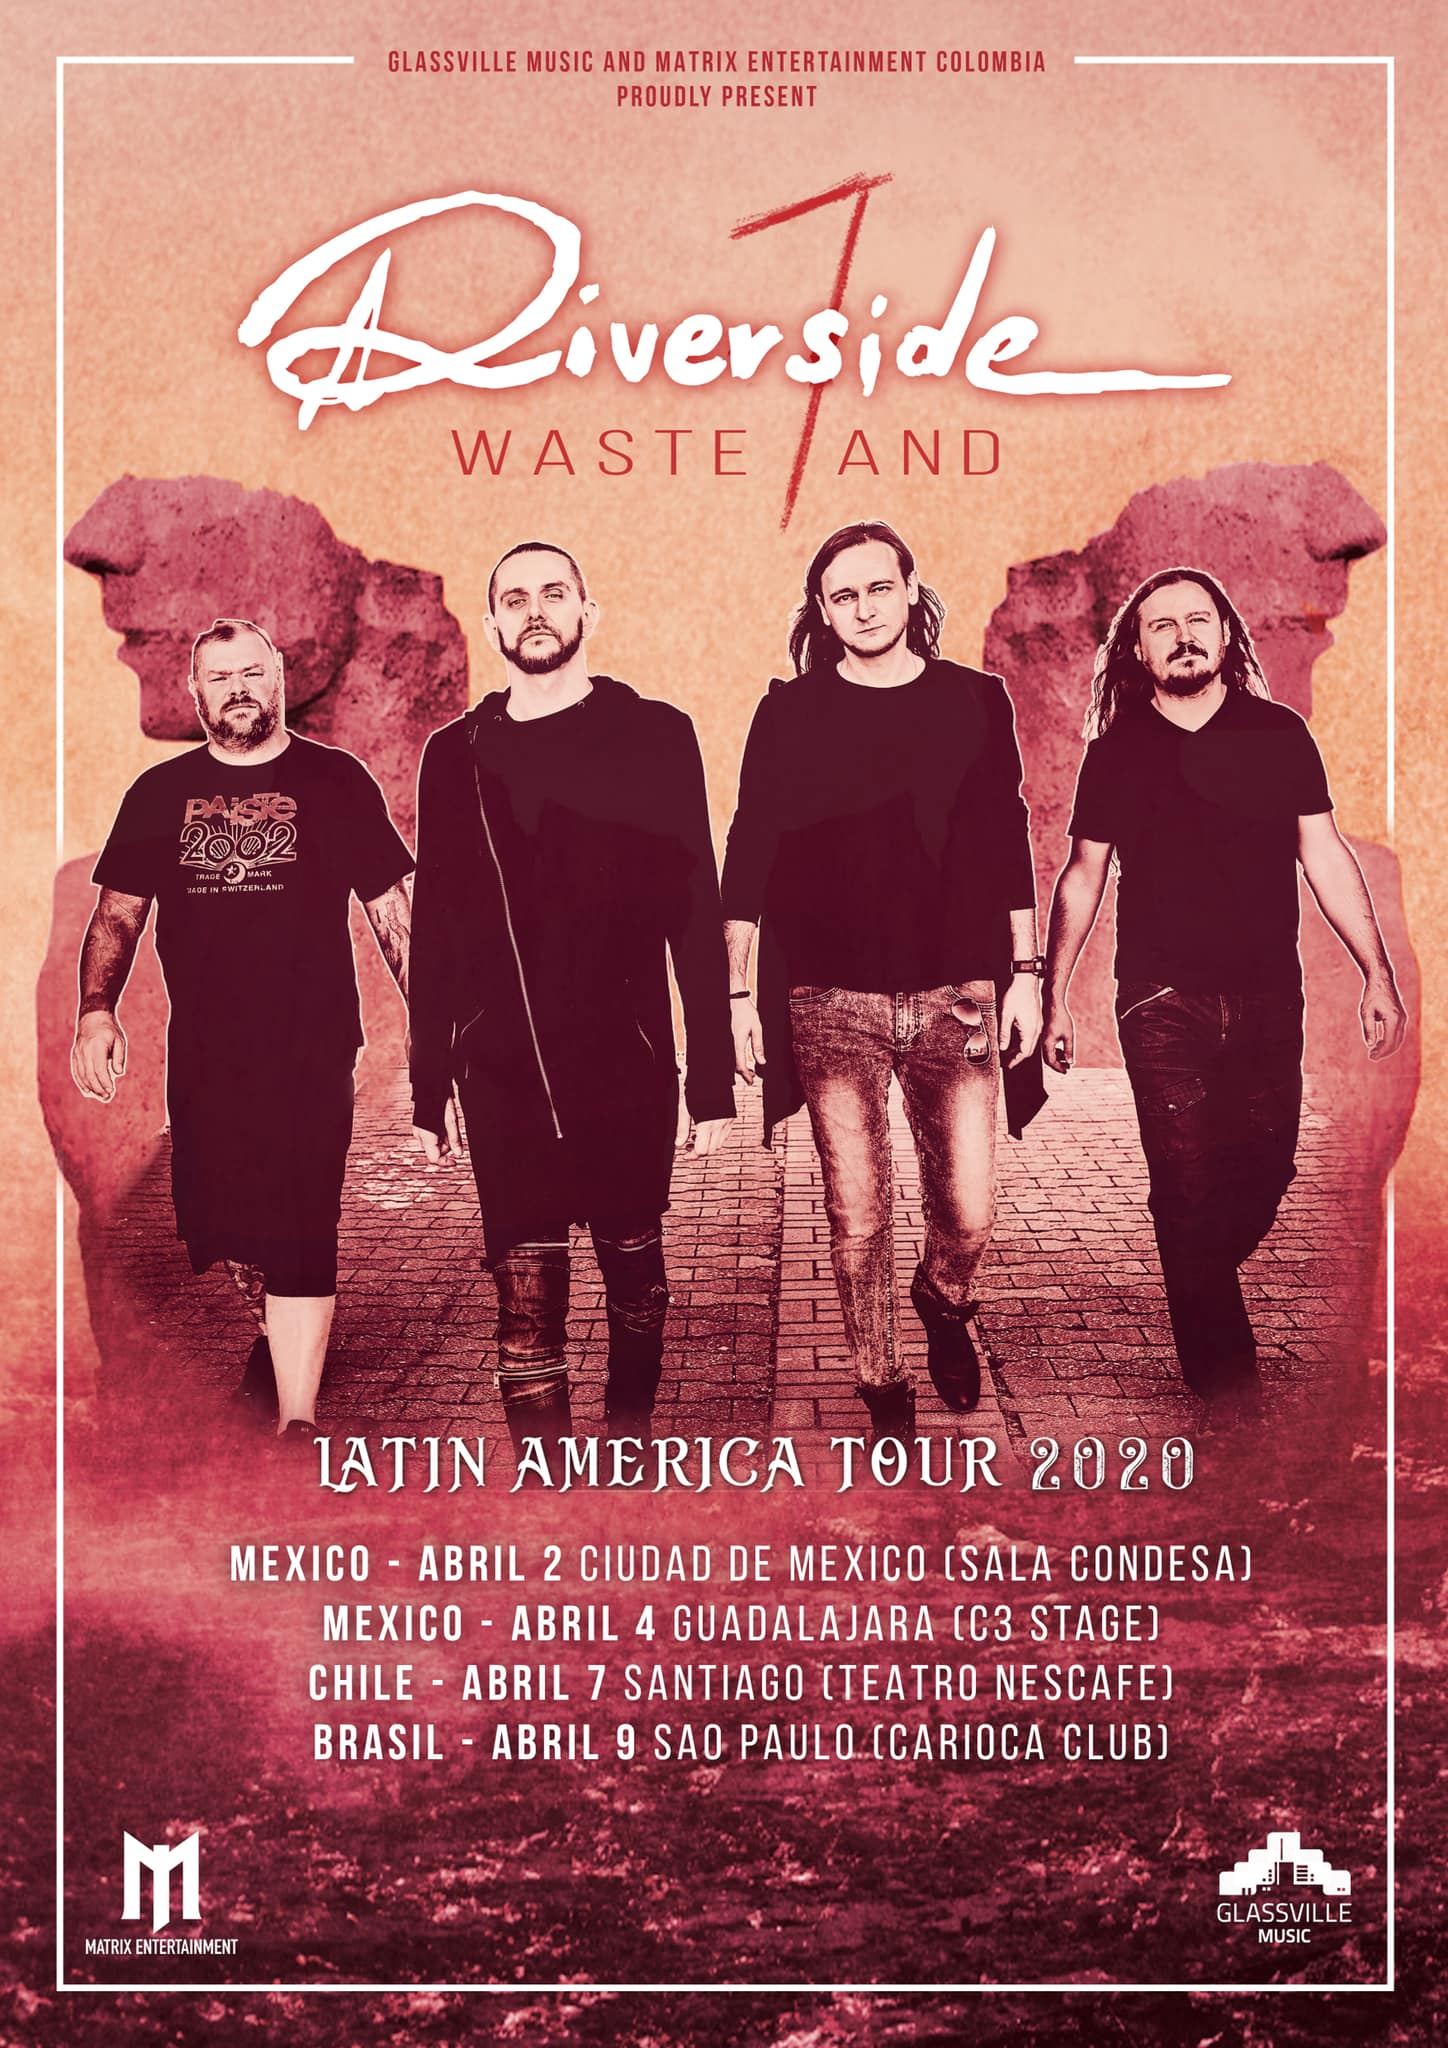 Wasteland Latin America Tour 2020